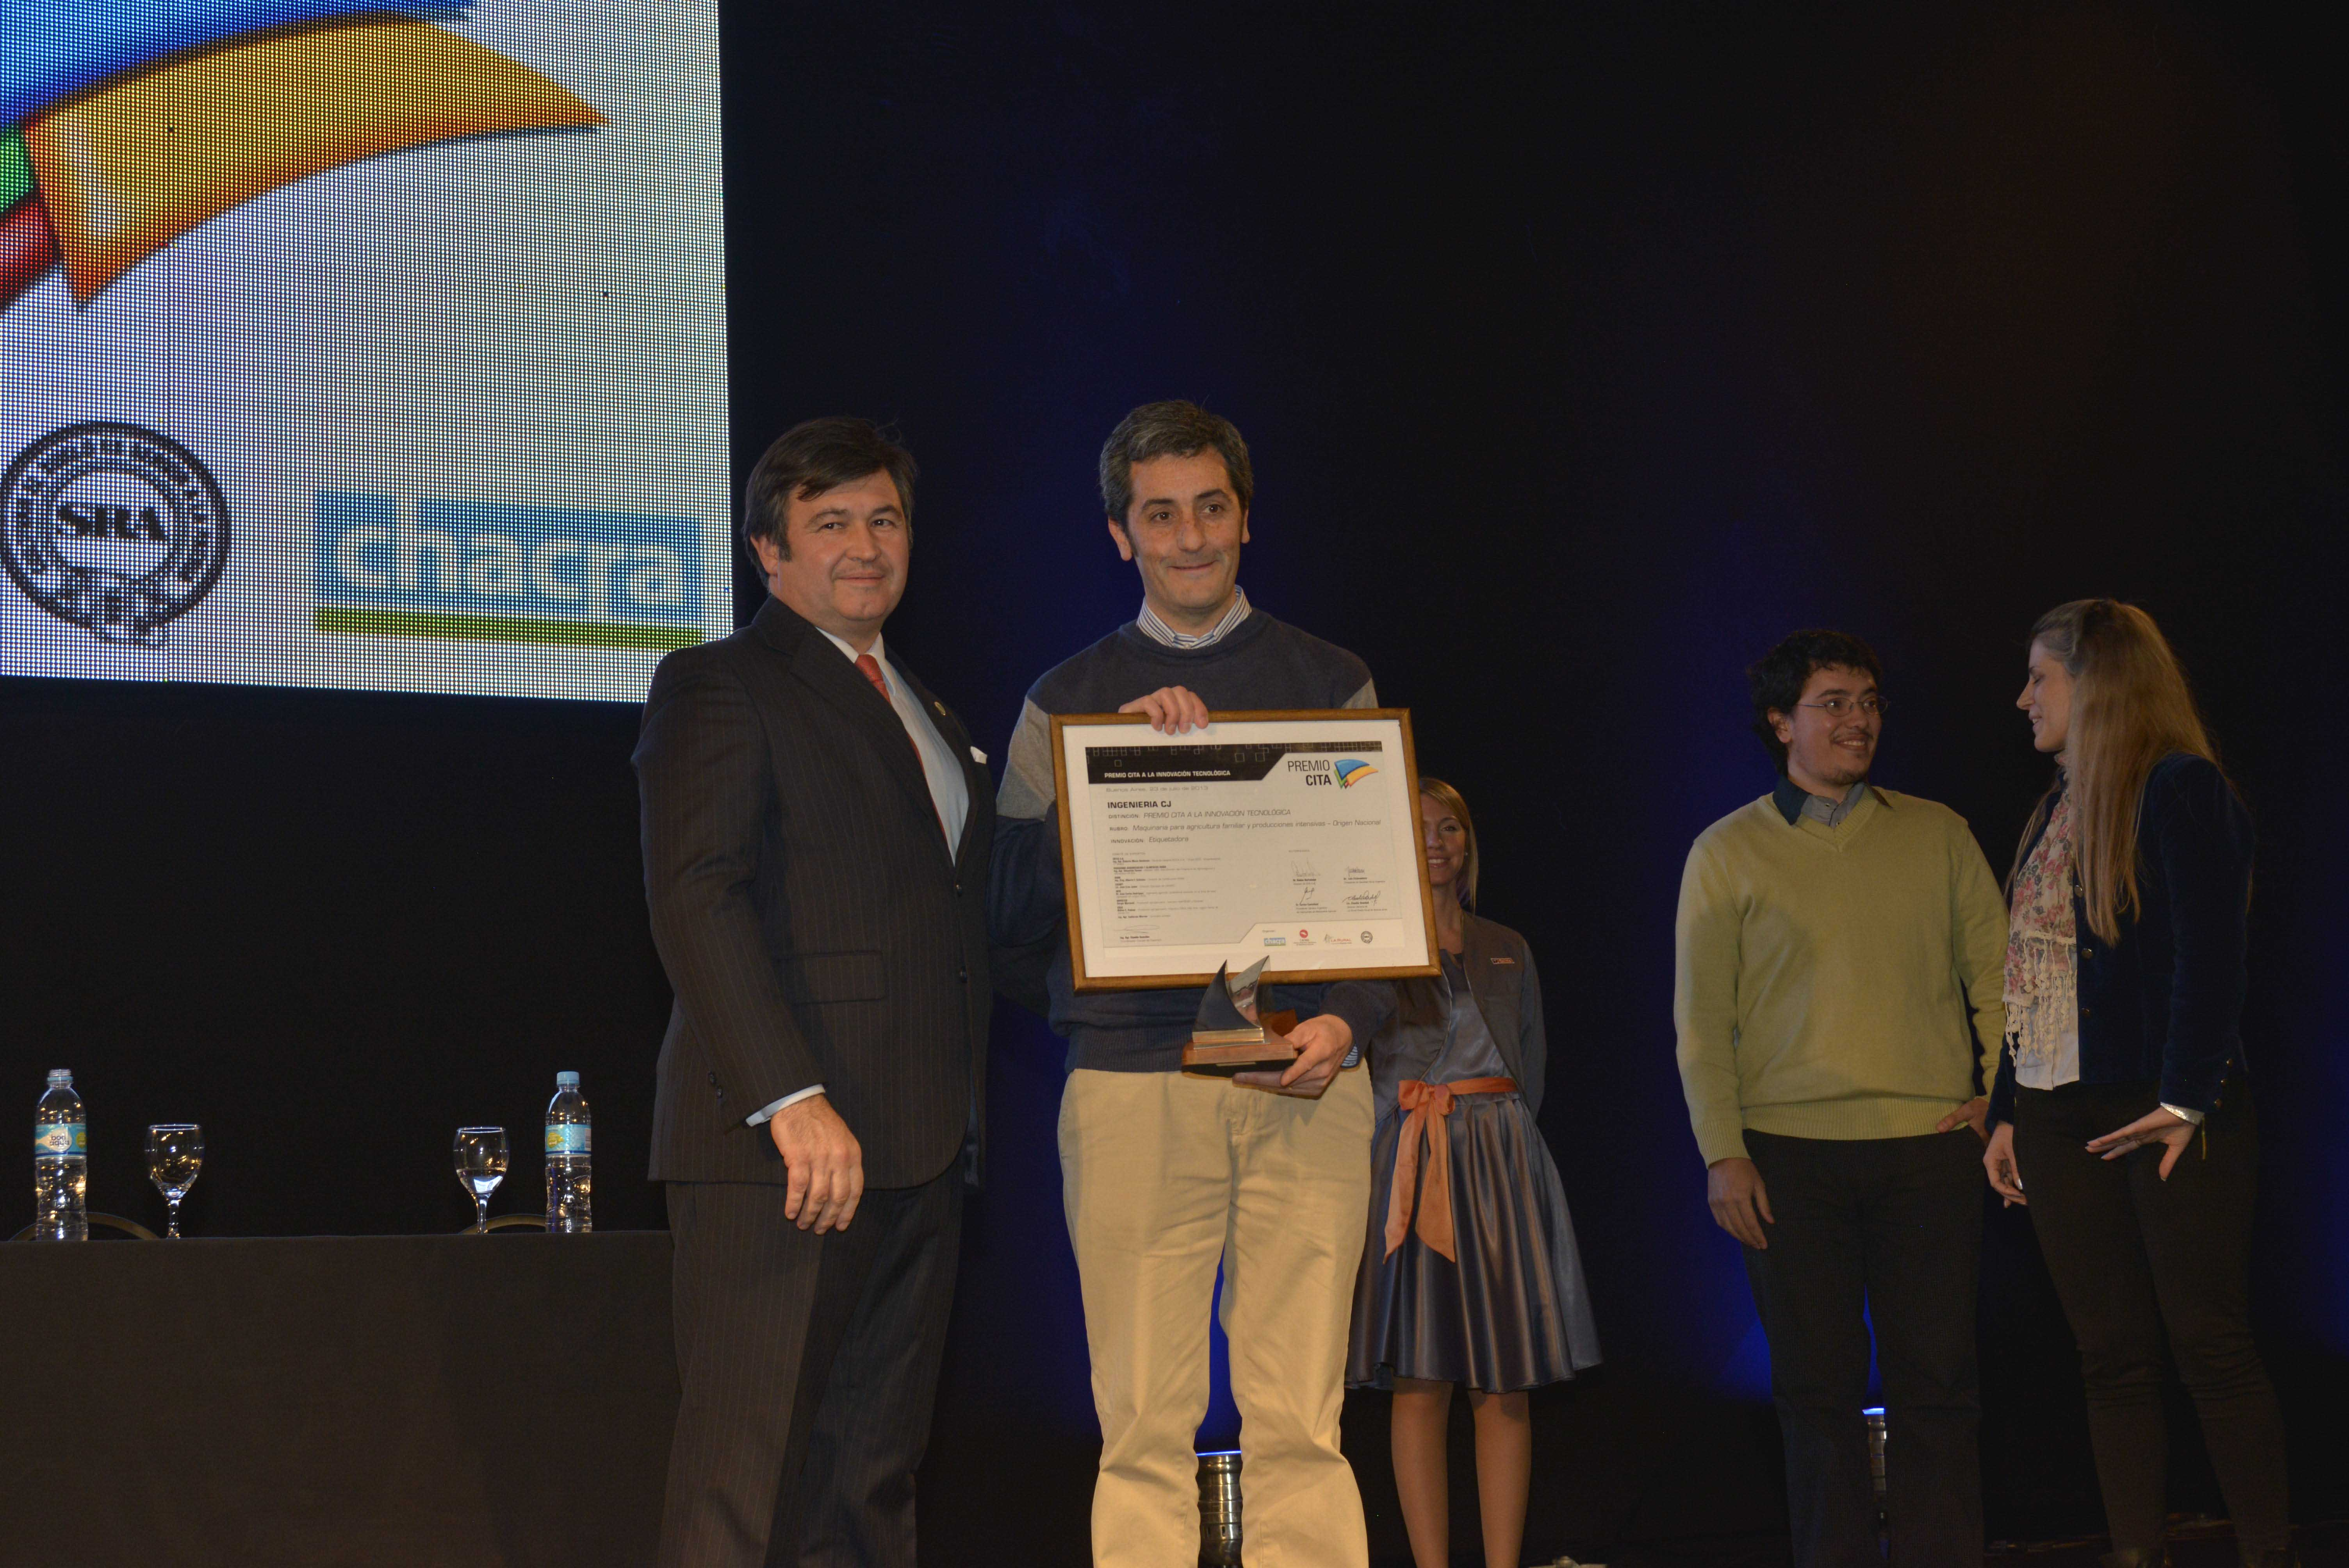 2013-09-ingenieria-cj-premio-maq-agr-familiar